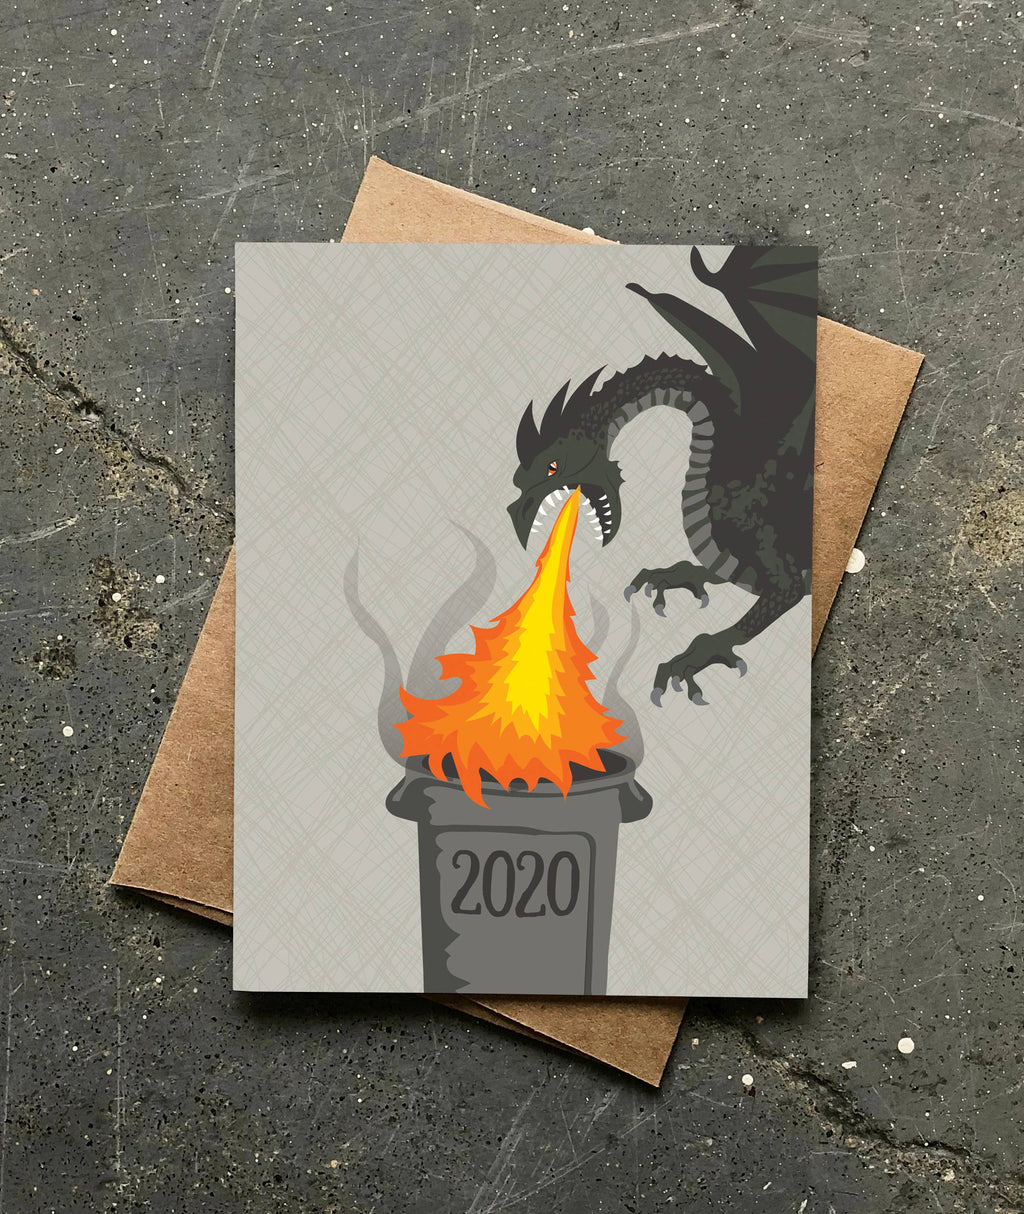 2020 Trash Fire New Year's Card || Modern Printed Matter